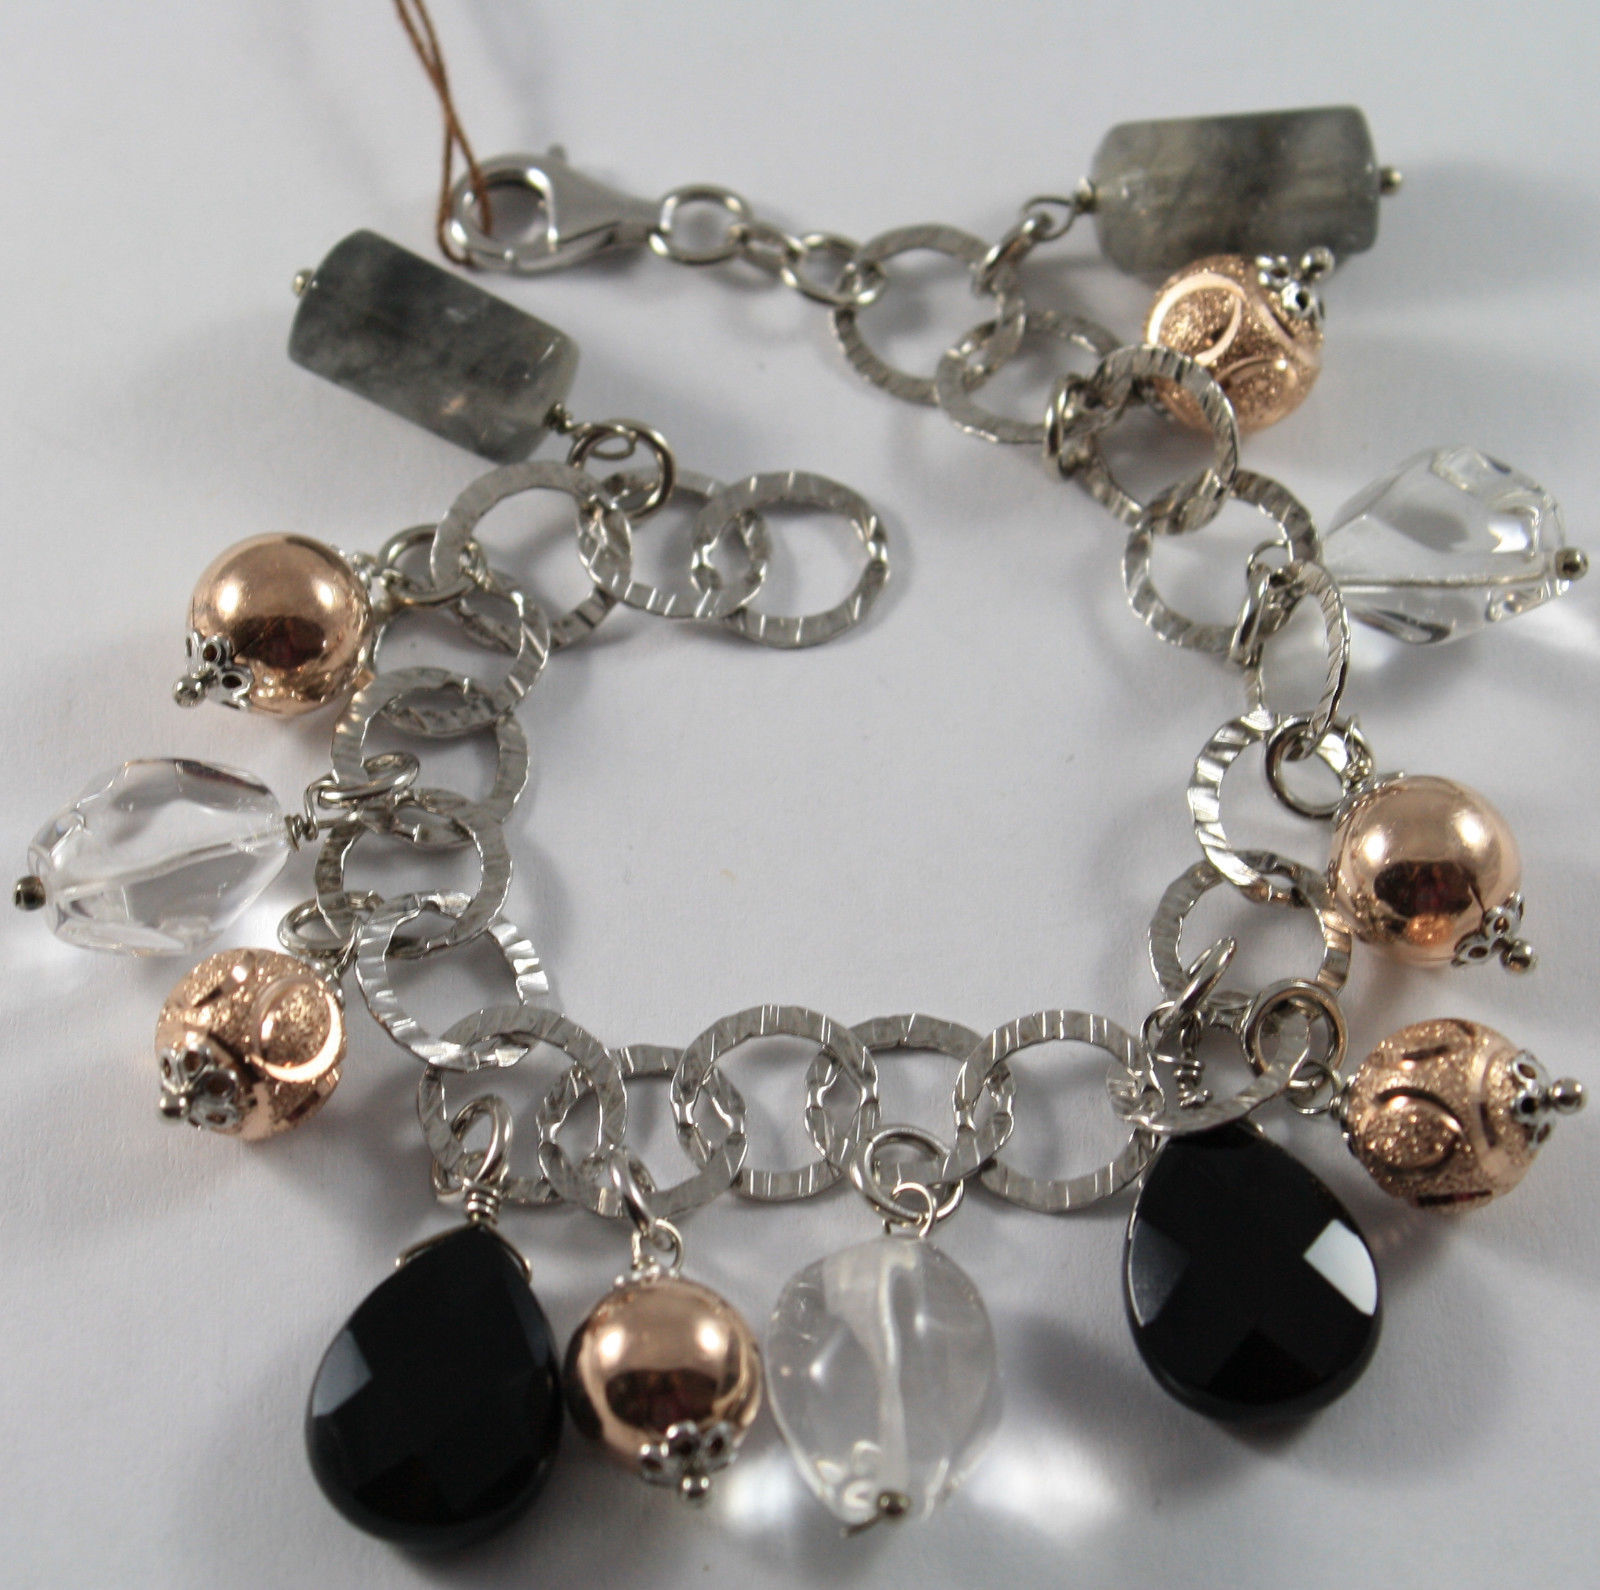 .925 RHODIUM SILVER BRACELET WITH BLACK ONYX, GRAY QUARTZ AND CRYSTAL